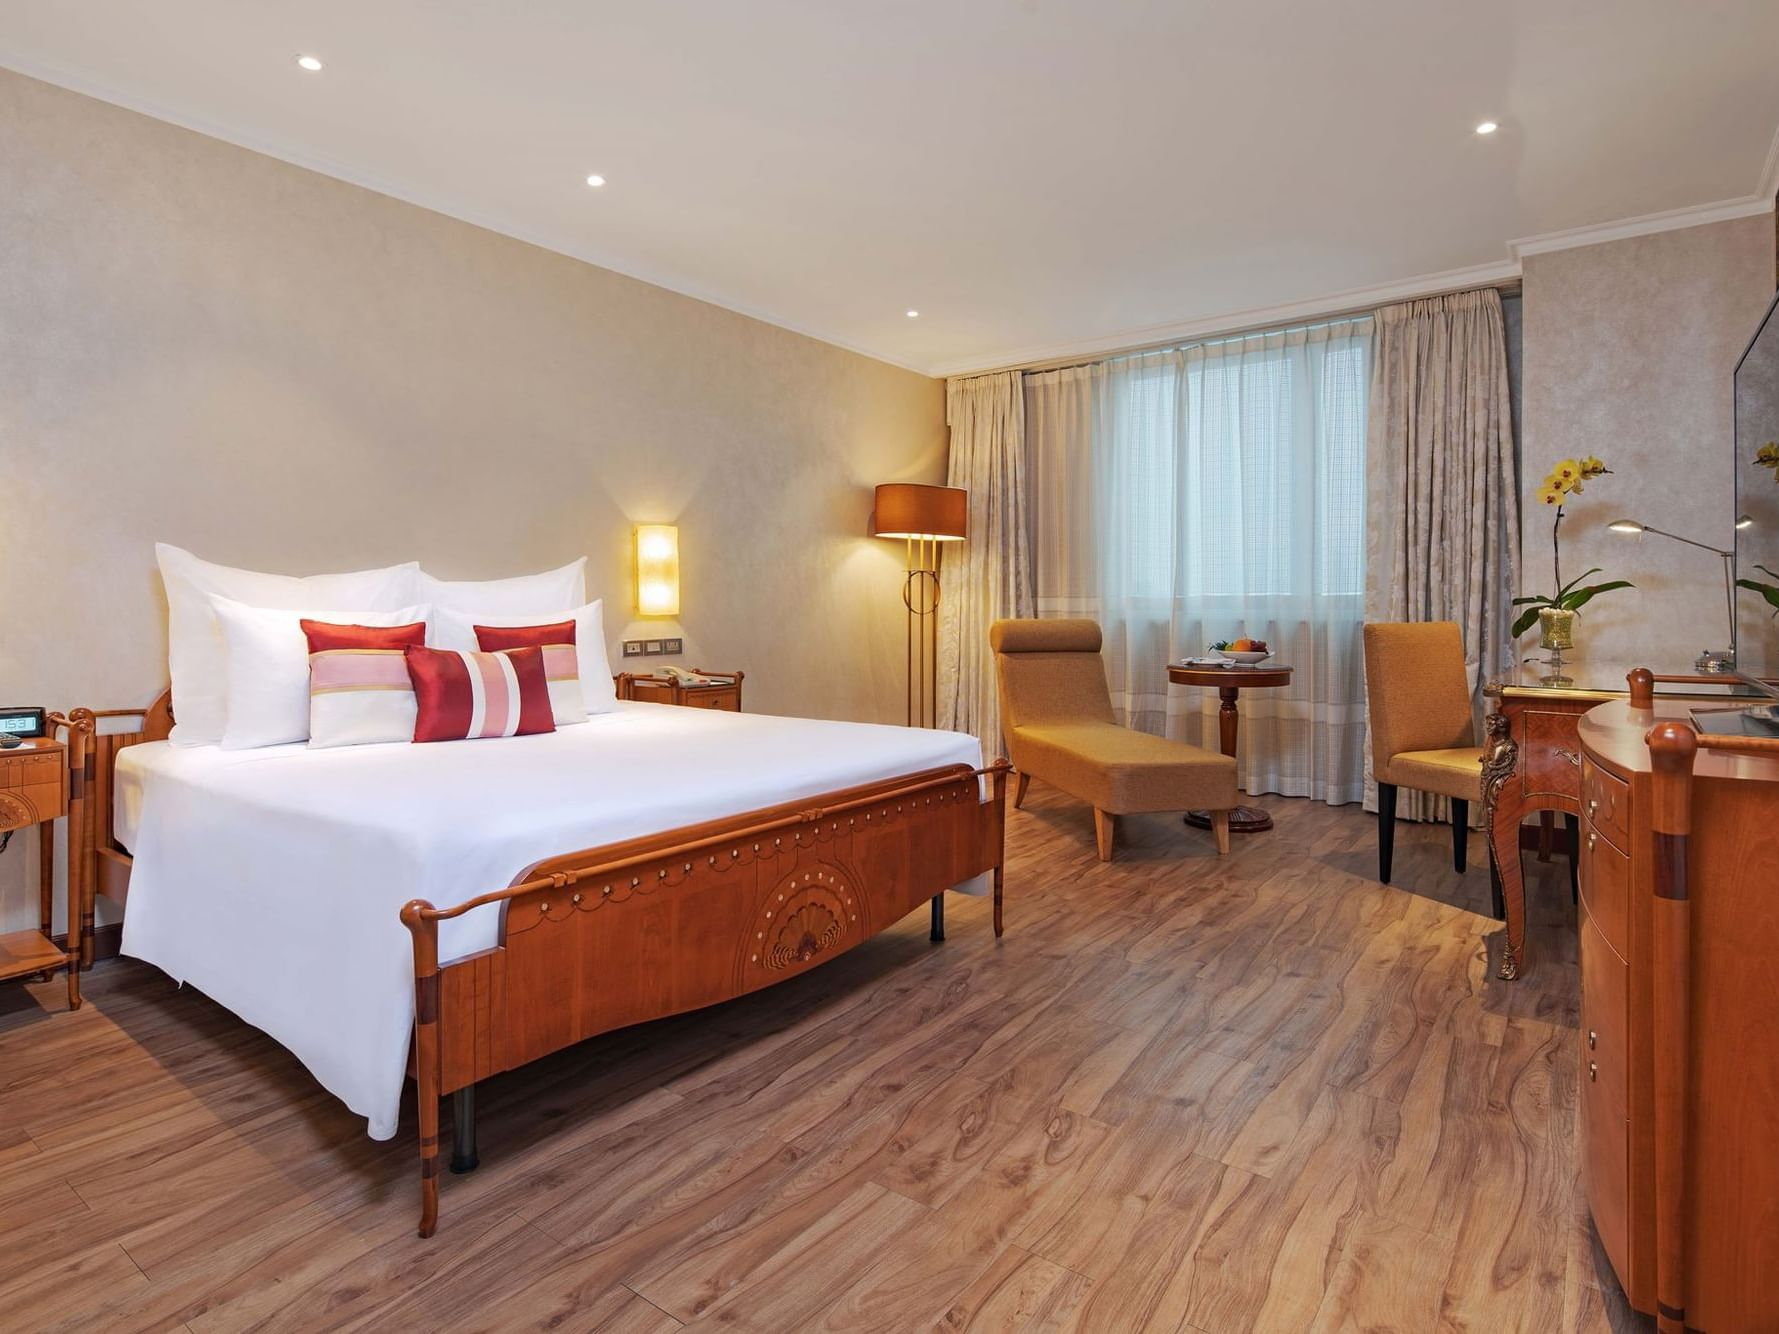 spacious hotel room with wood furniture